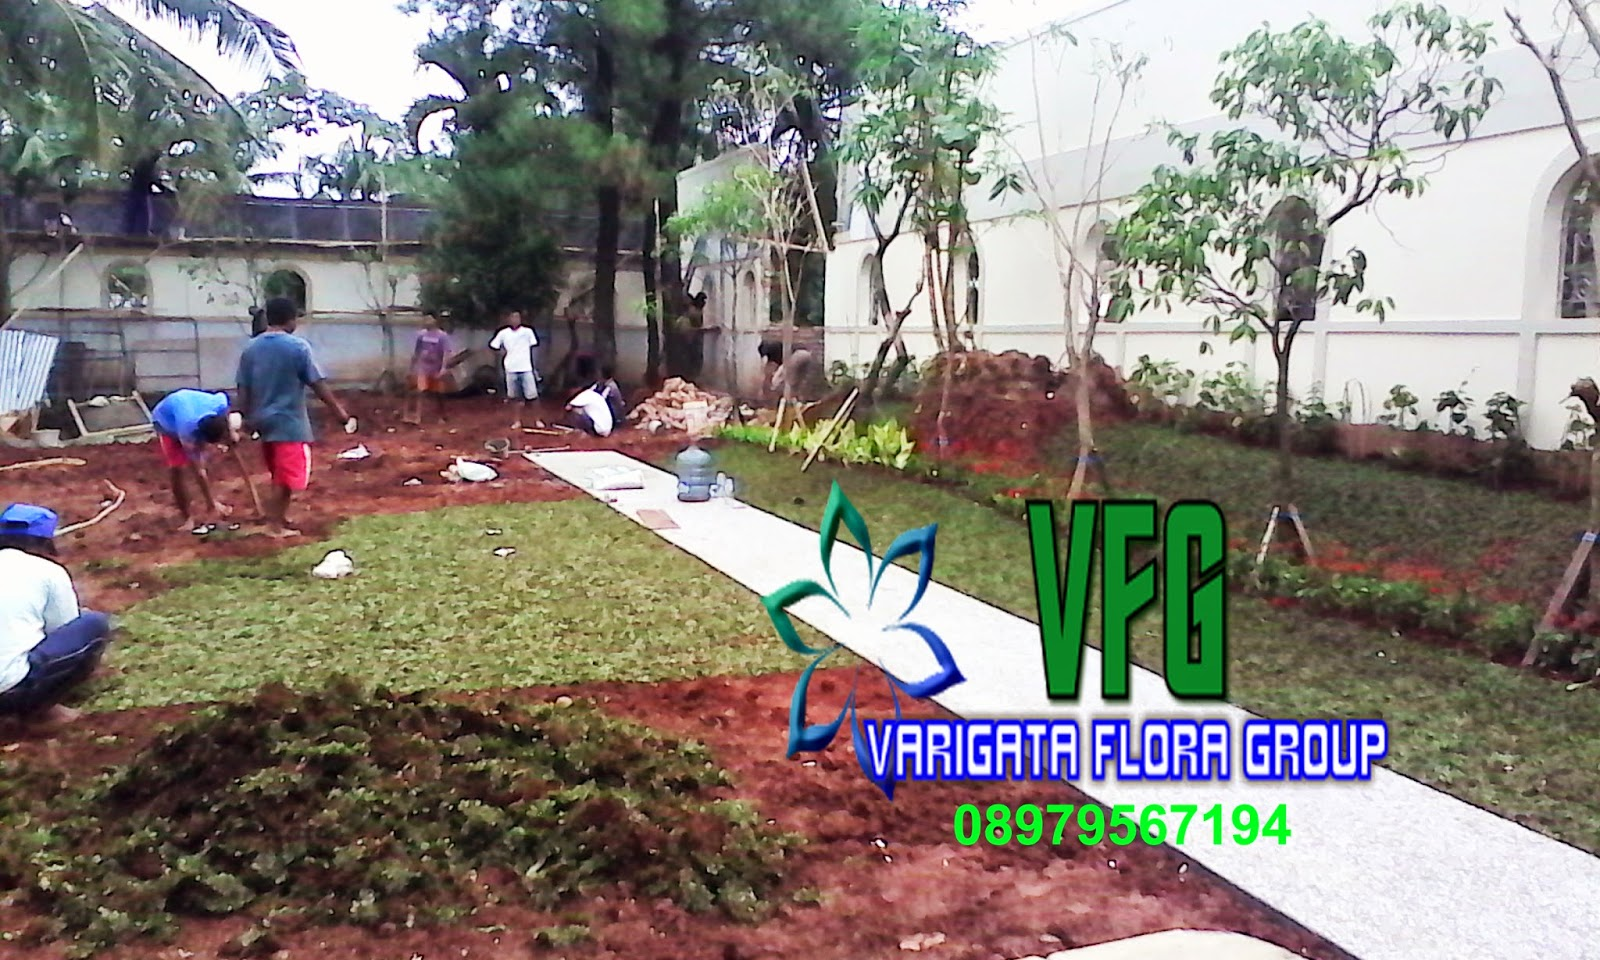 SERVICES OF GARDEN VARIGATA FLORA GROUP LANDSCAPE